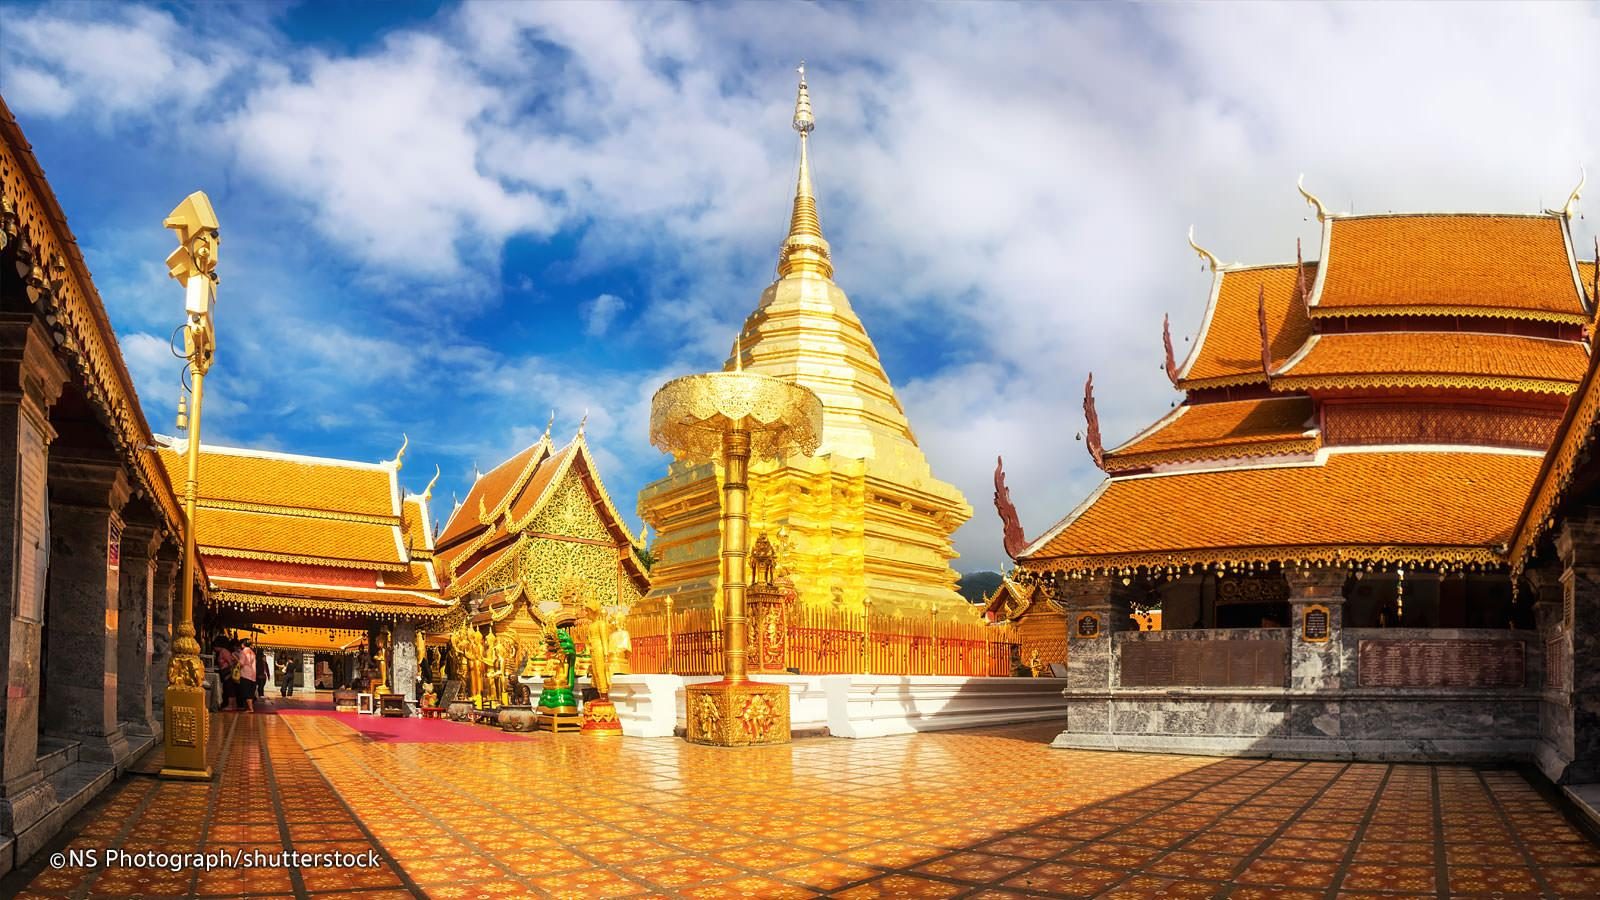 Doi Suthep in Chiang Mai: Large Photos and VDO of Chiang Mai Temples